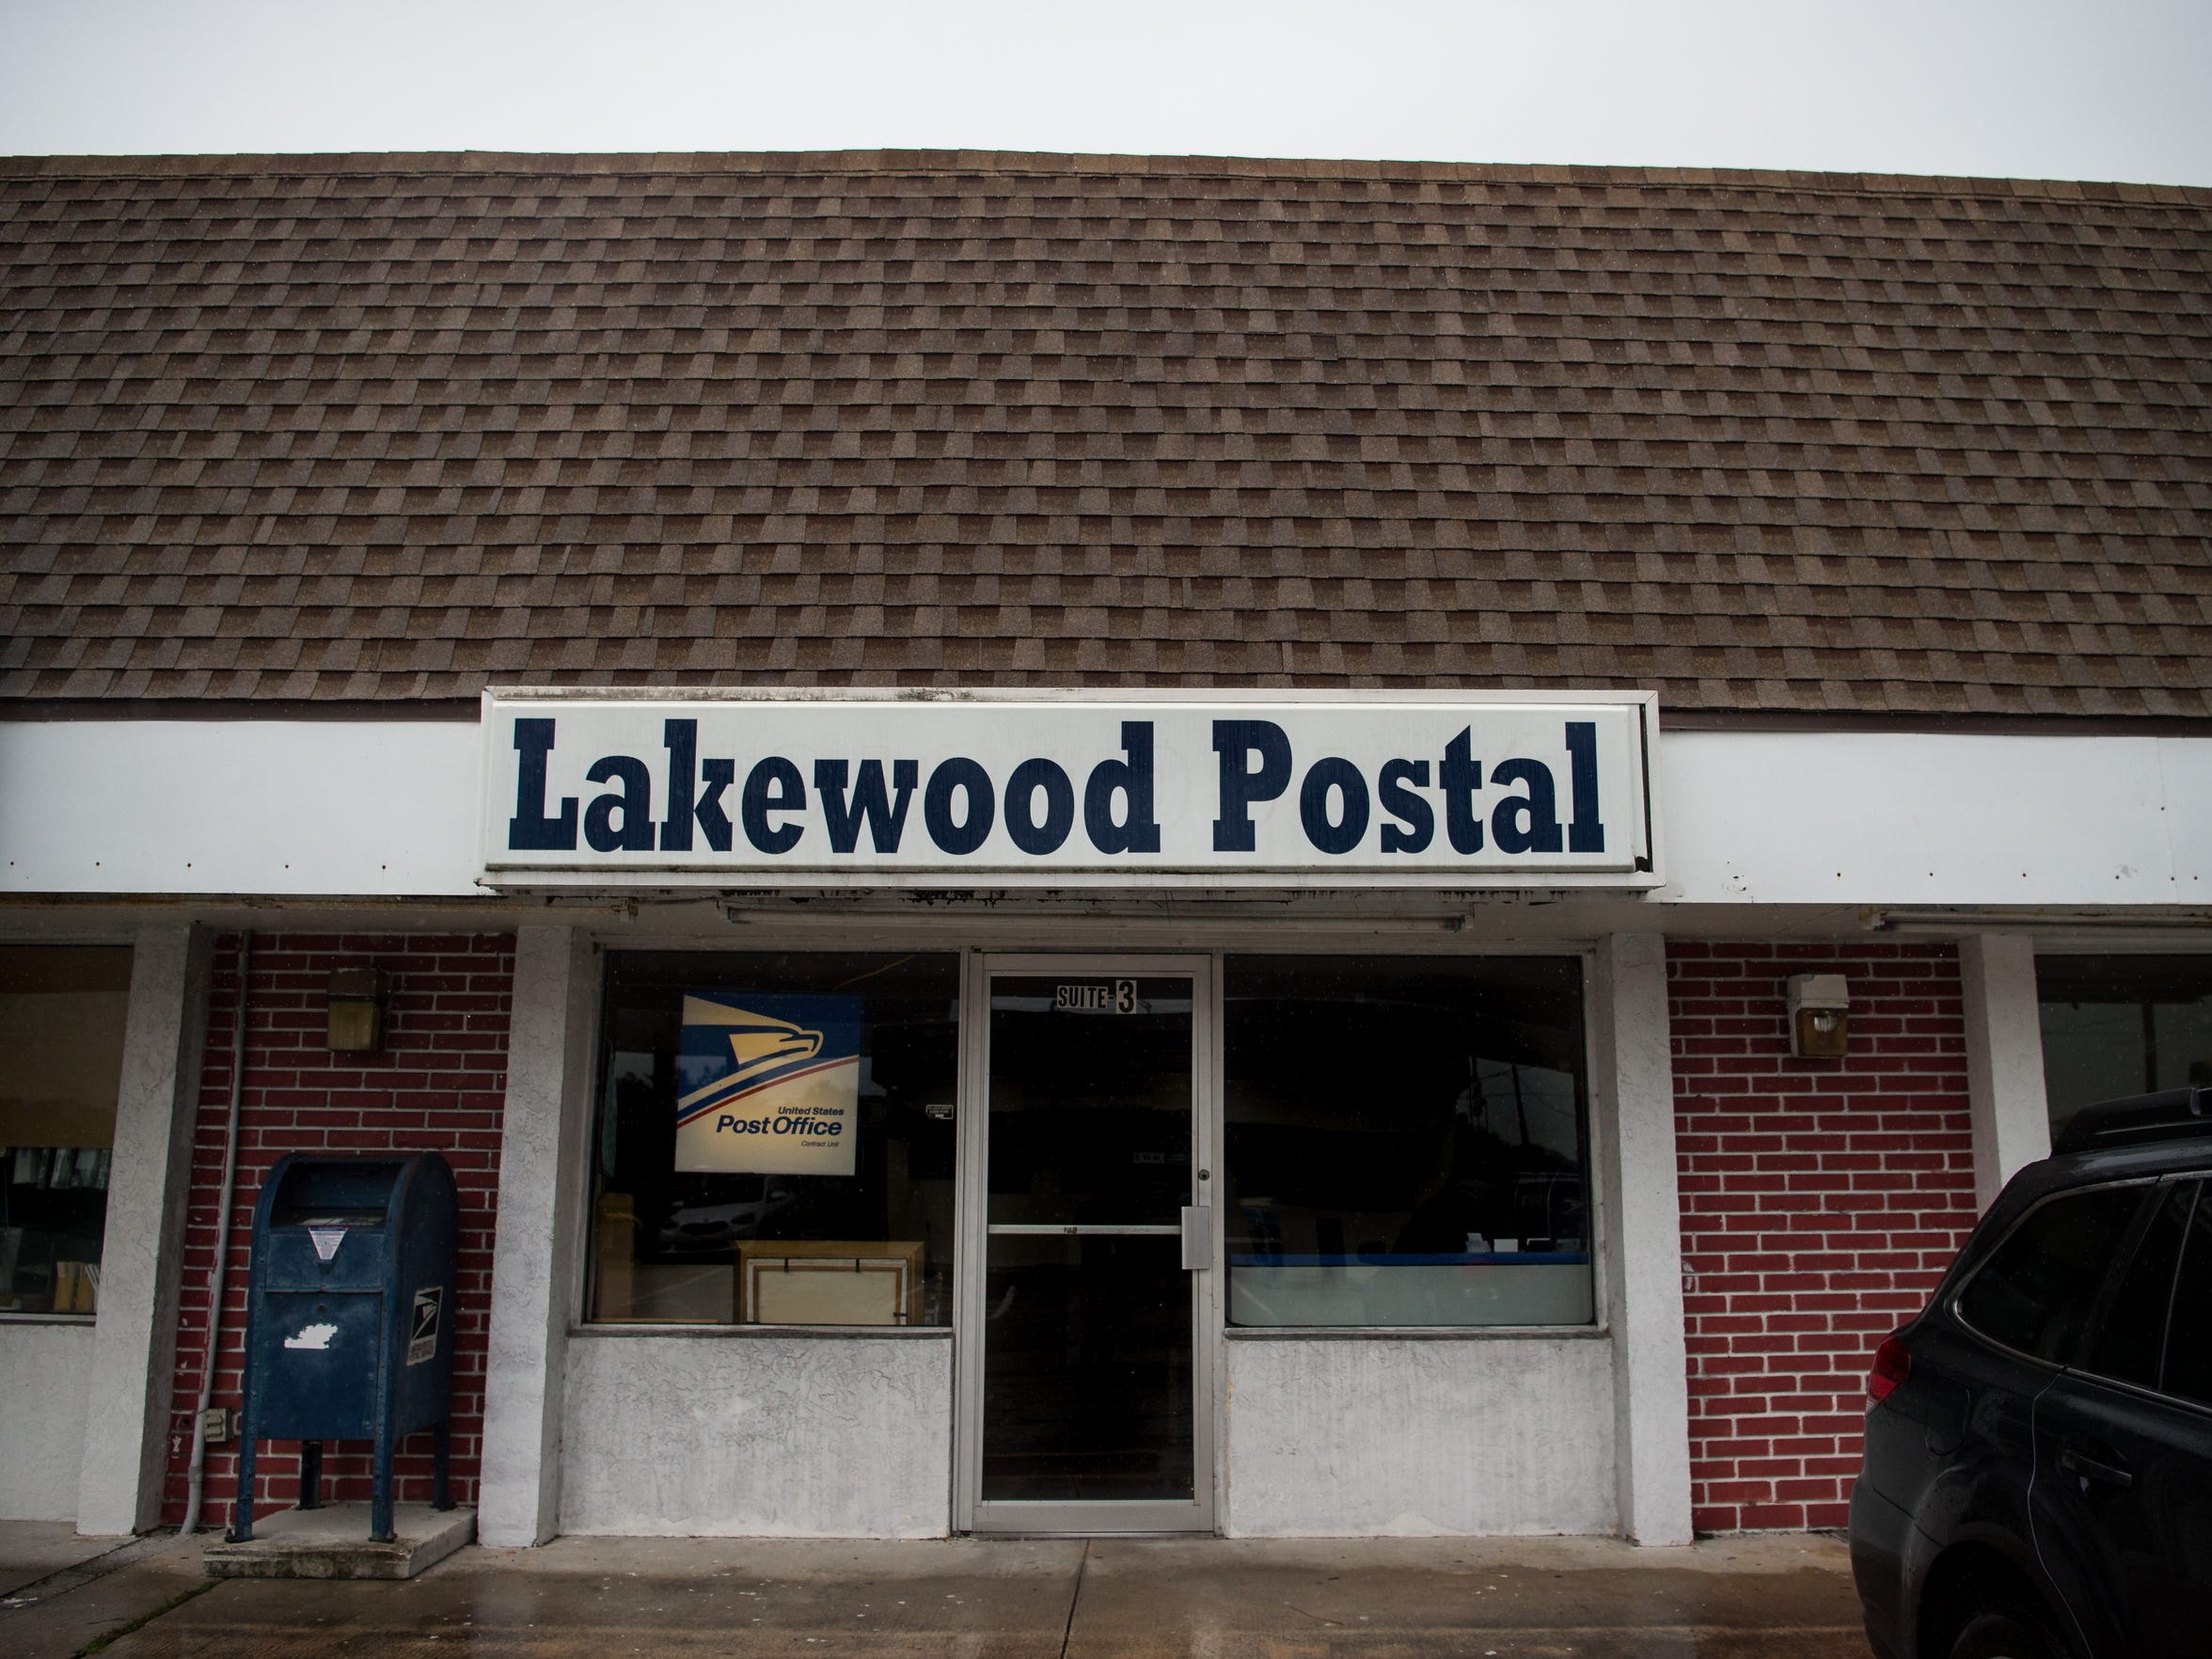 Lakewood Postal on Indrio Road, seen July 31, 2017, is where the former Five Star Food Store was located in Lakewood Park. Tariq Hussain, of Vero Beach, was working a late shift at the family business in 1995 when he was shot and killed. Lanadieal Ashe, of Fort Pierce, who was a juvenile at the time, was convicted of his murder.